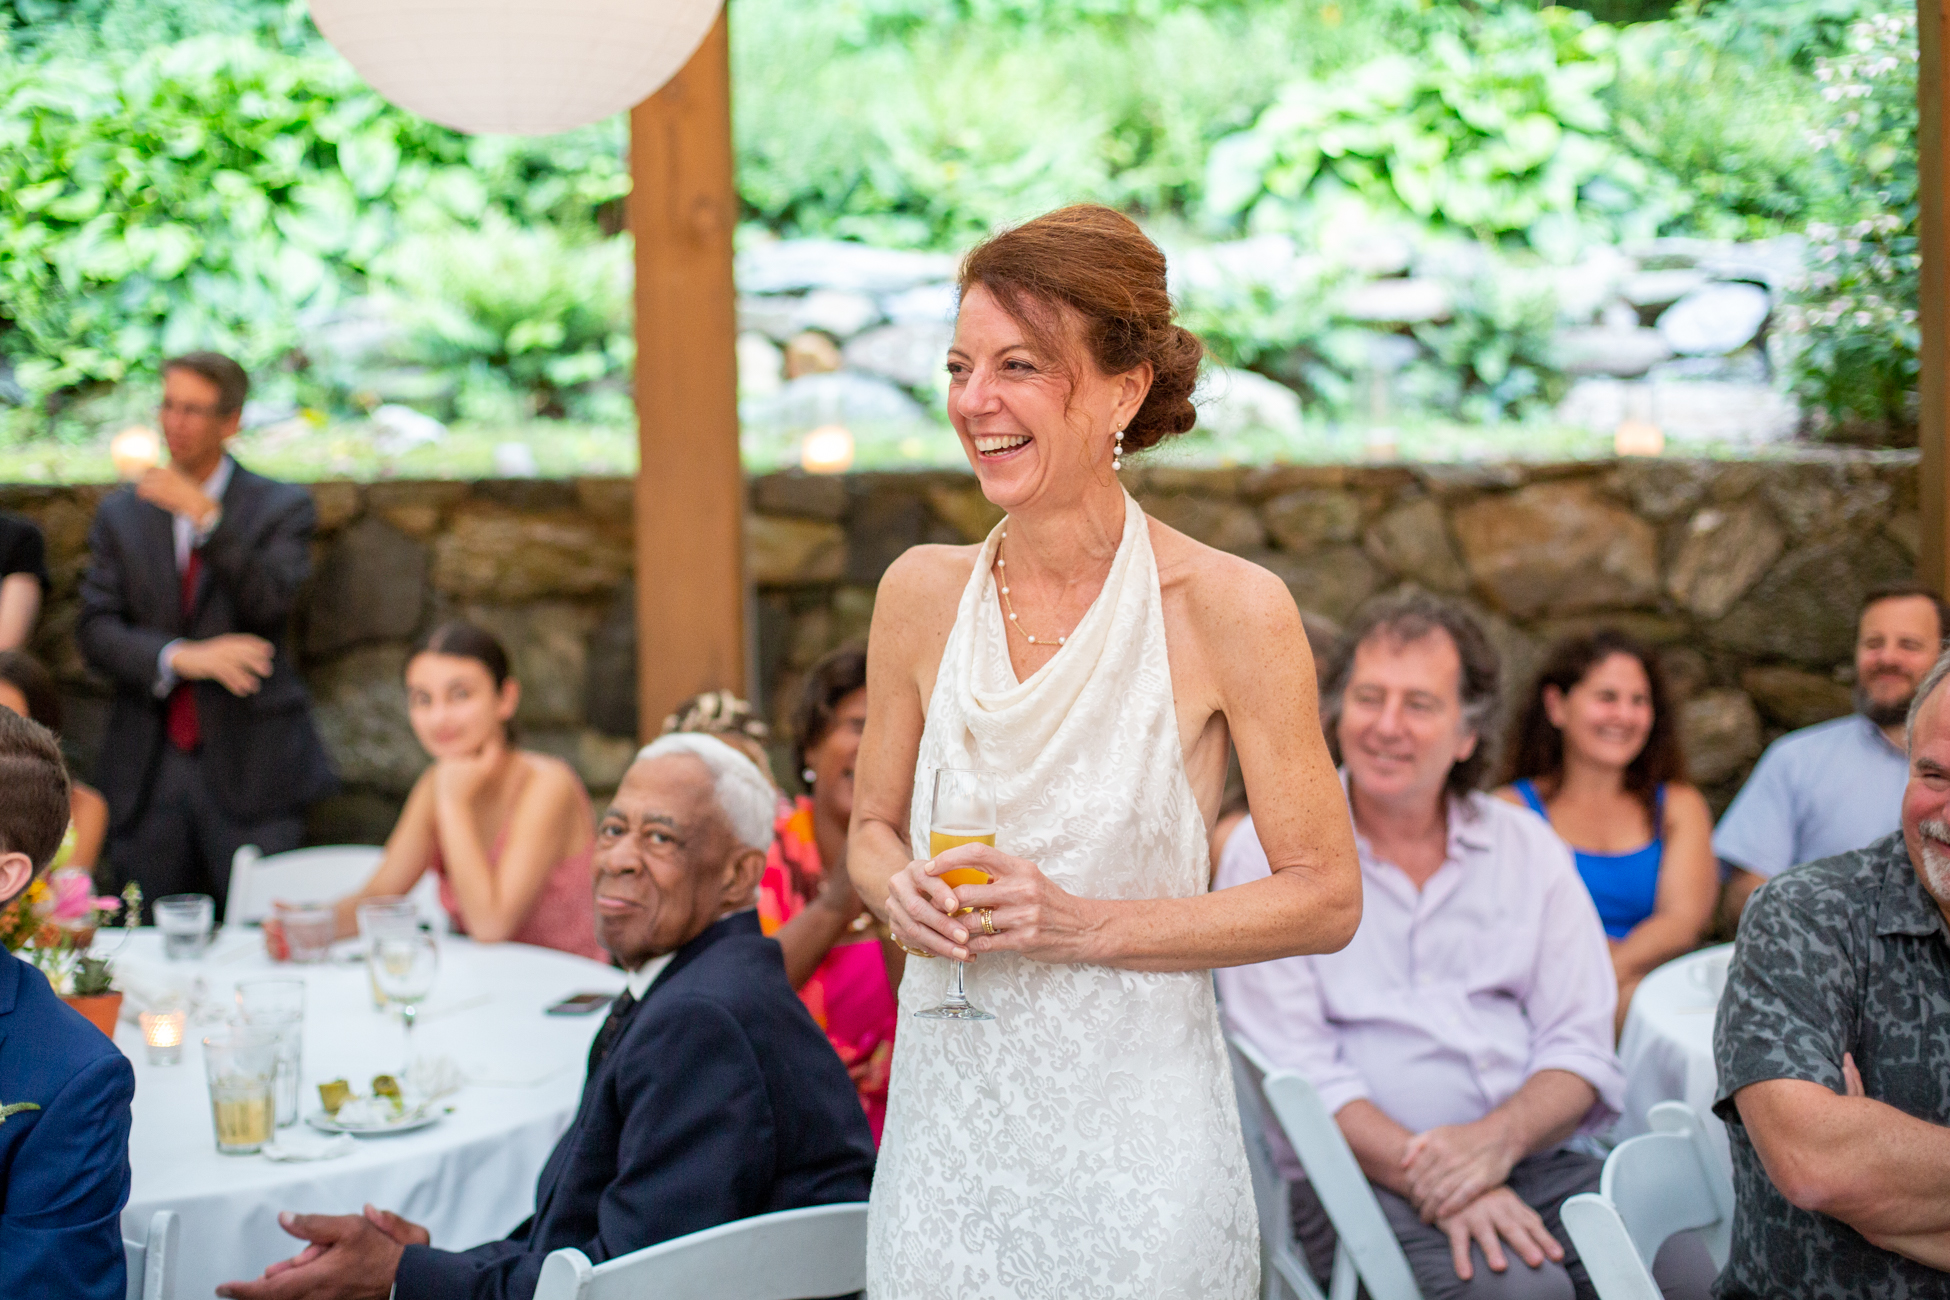 Melton-Kessler Wedding at Valley Green Inn by Avi Loren Fox LLC-77.jpg